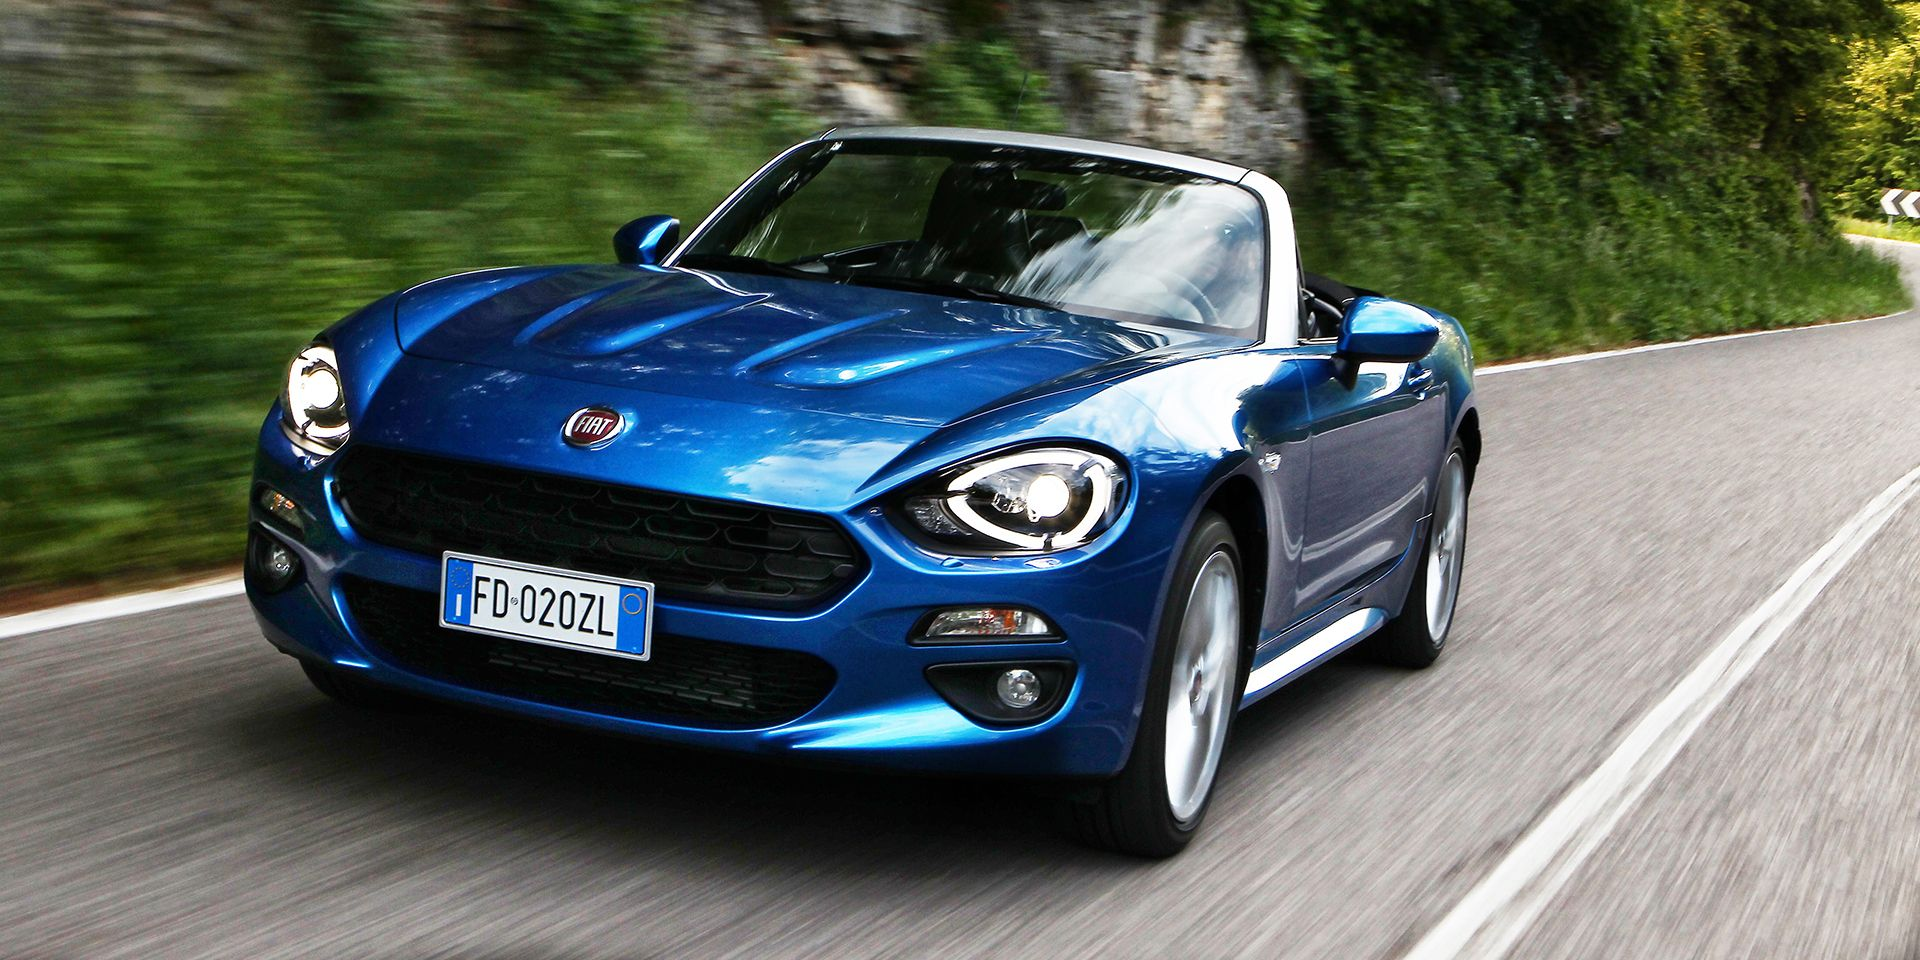 """<p><a href=""""http://www.roadandtrack.com/new-cars/first-drives/news/a29486/fiat-124-qa-review/"""" target=""""_blank"""">The Fiat 124 Spider</a>'s $24,995 starting price puts it about as close to our $25,000 cutoff as you can get, but hey, it still counts. And while it's heavier and <a href=""""http://www.caranddriver.com/fiat/124-spider"""" target=""""_blank"""">not quite as quick as the Miata</a> it's based on, that added weight goes towards making the 124 Spider more comfortable and refined. </p>"""